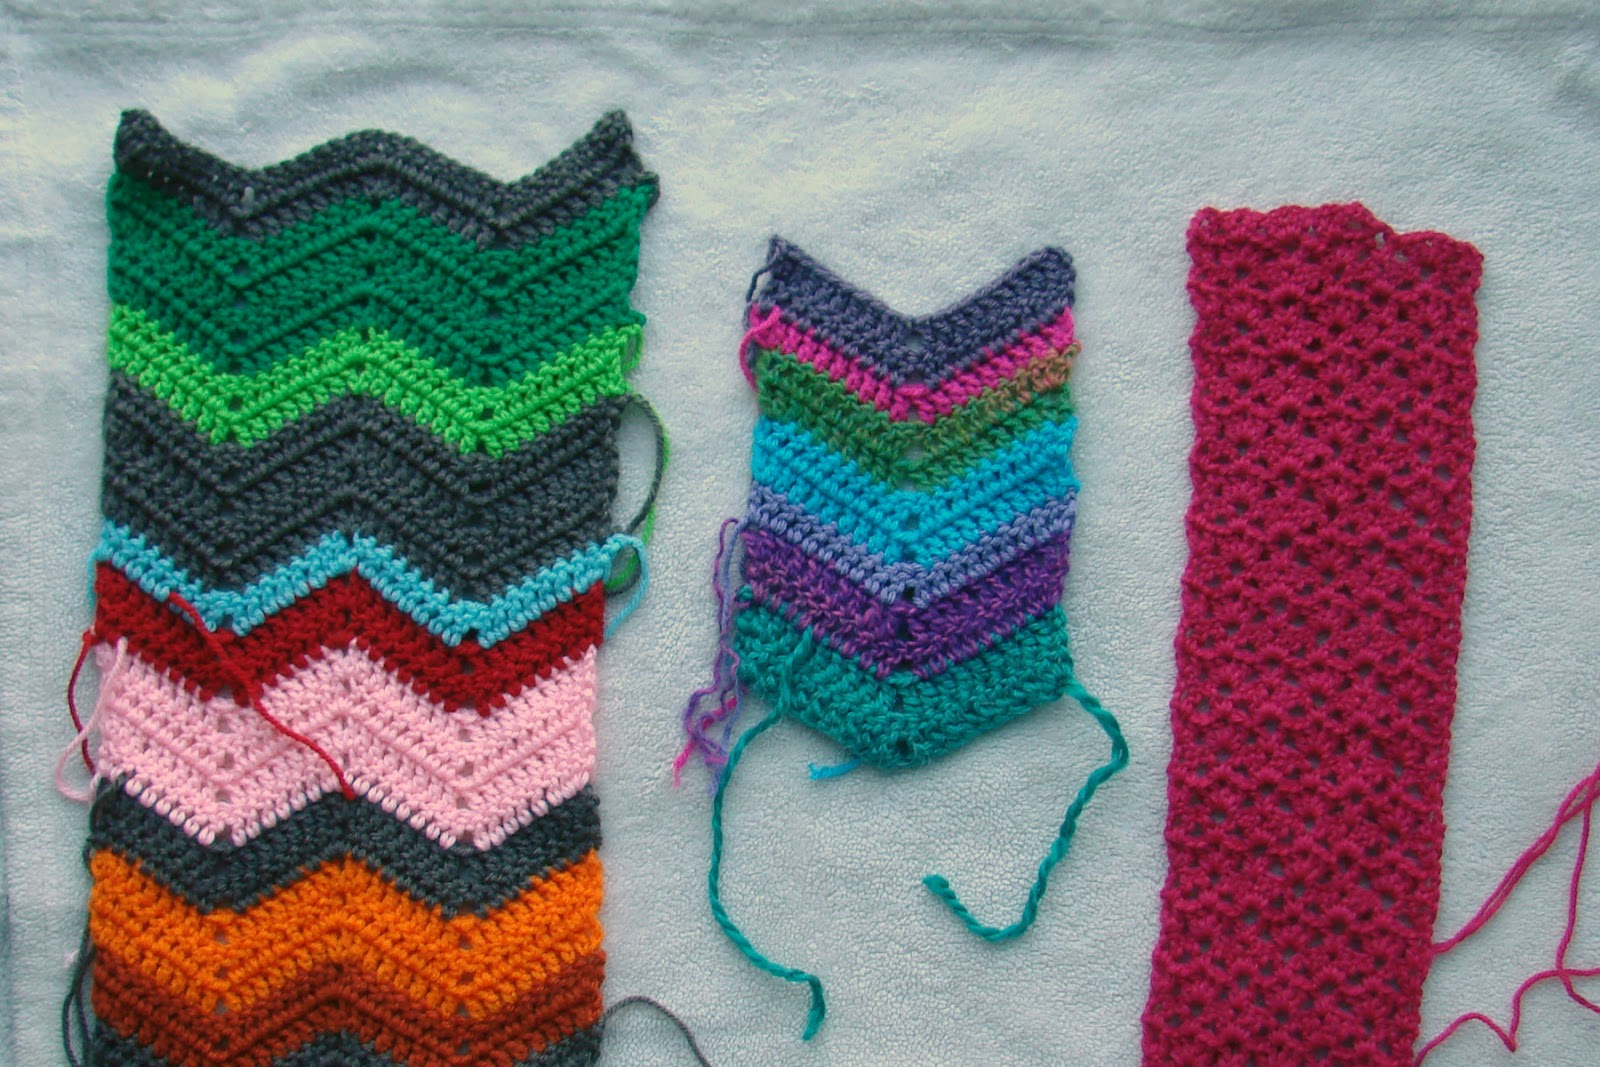 Crochet in Color: Three Scarves